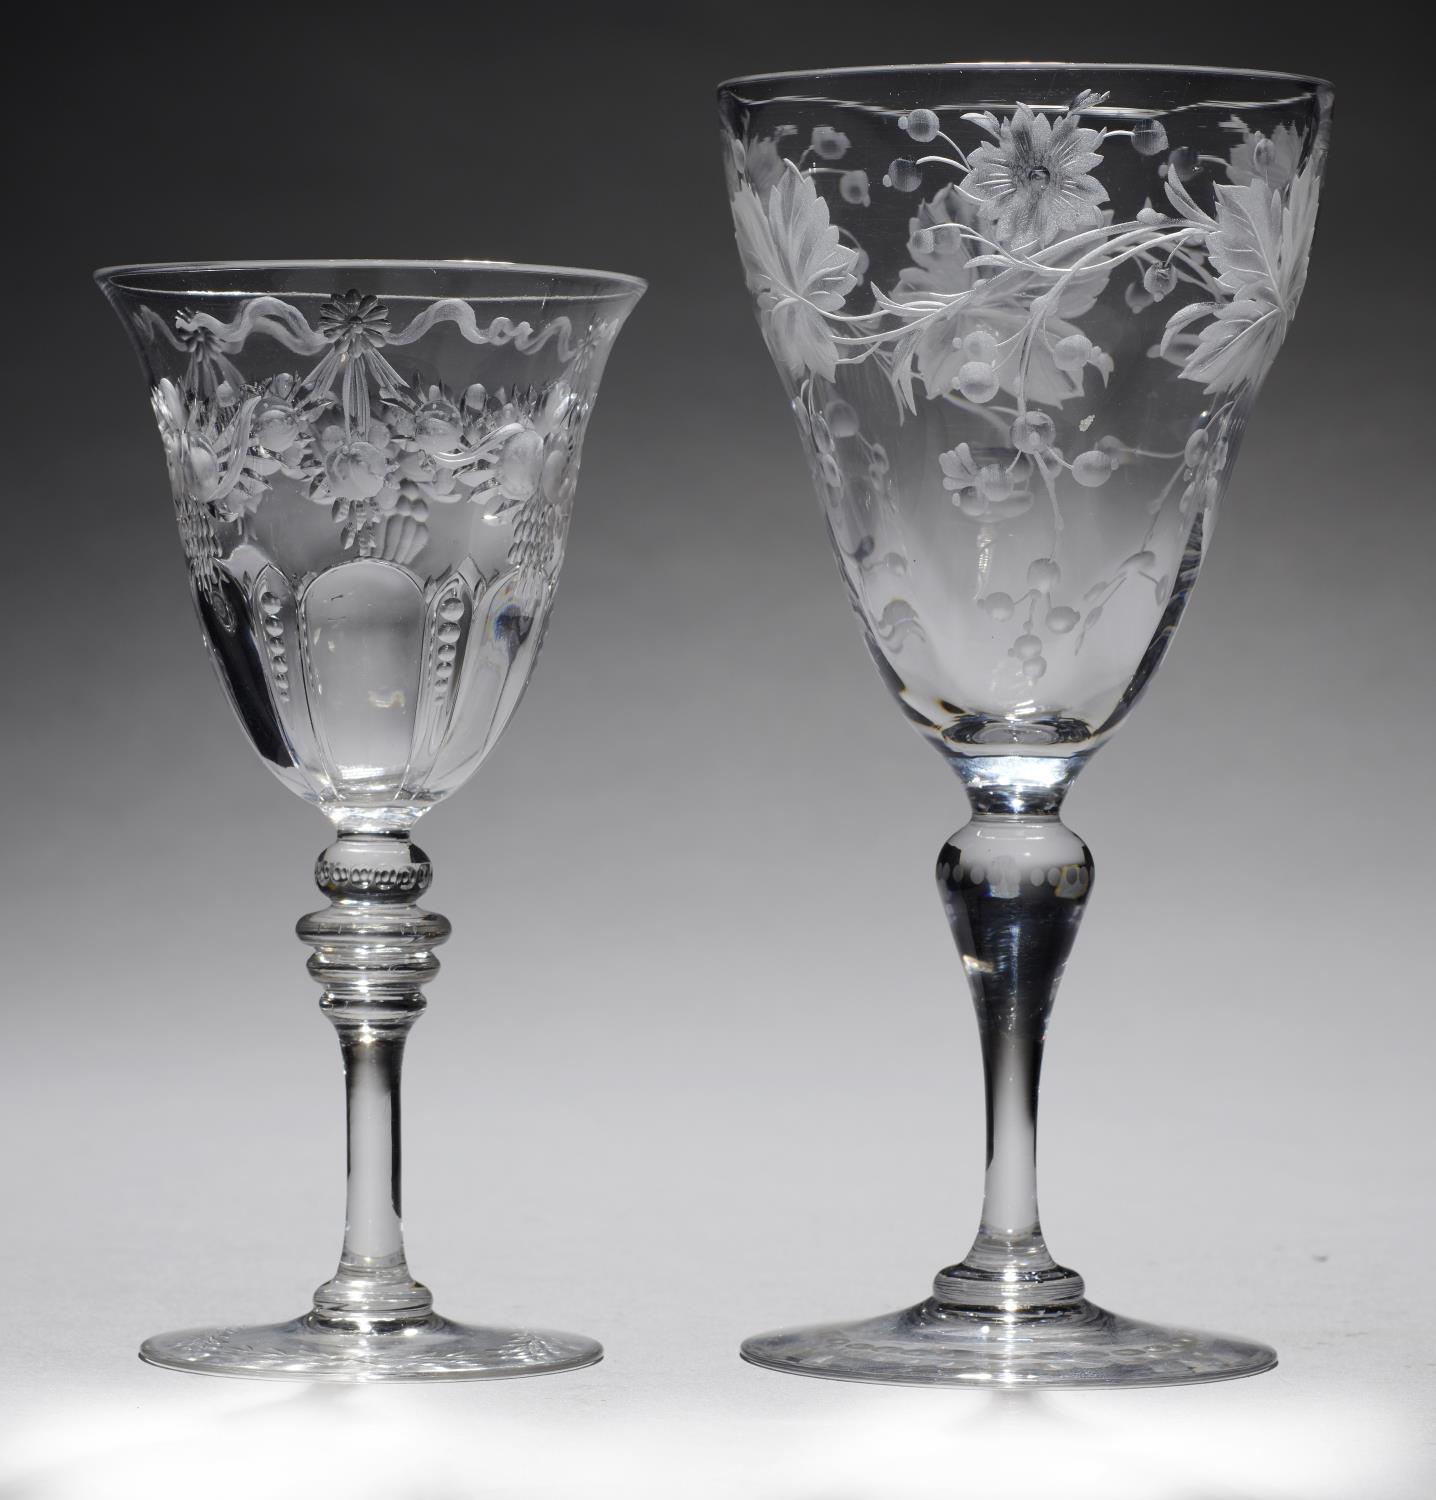 Lot 374 - TWO ENGLISH INTAGLIO ENGRAVED 'ROCK CRYSTAL' WINE GLASSES, ONE THOMAS WEBB & SONS, EARLY 20TH C